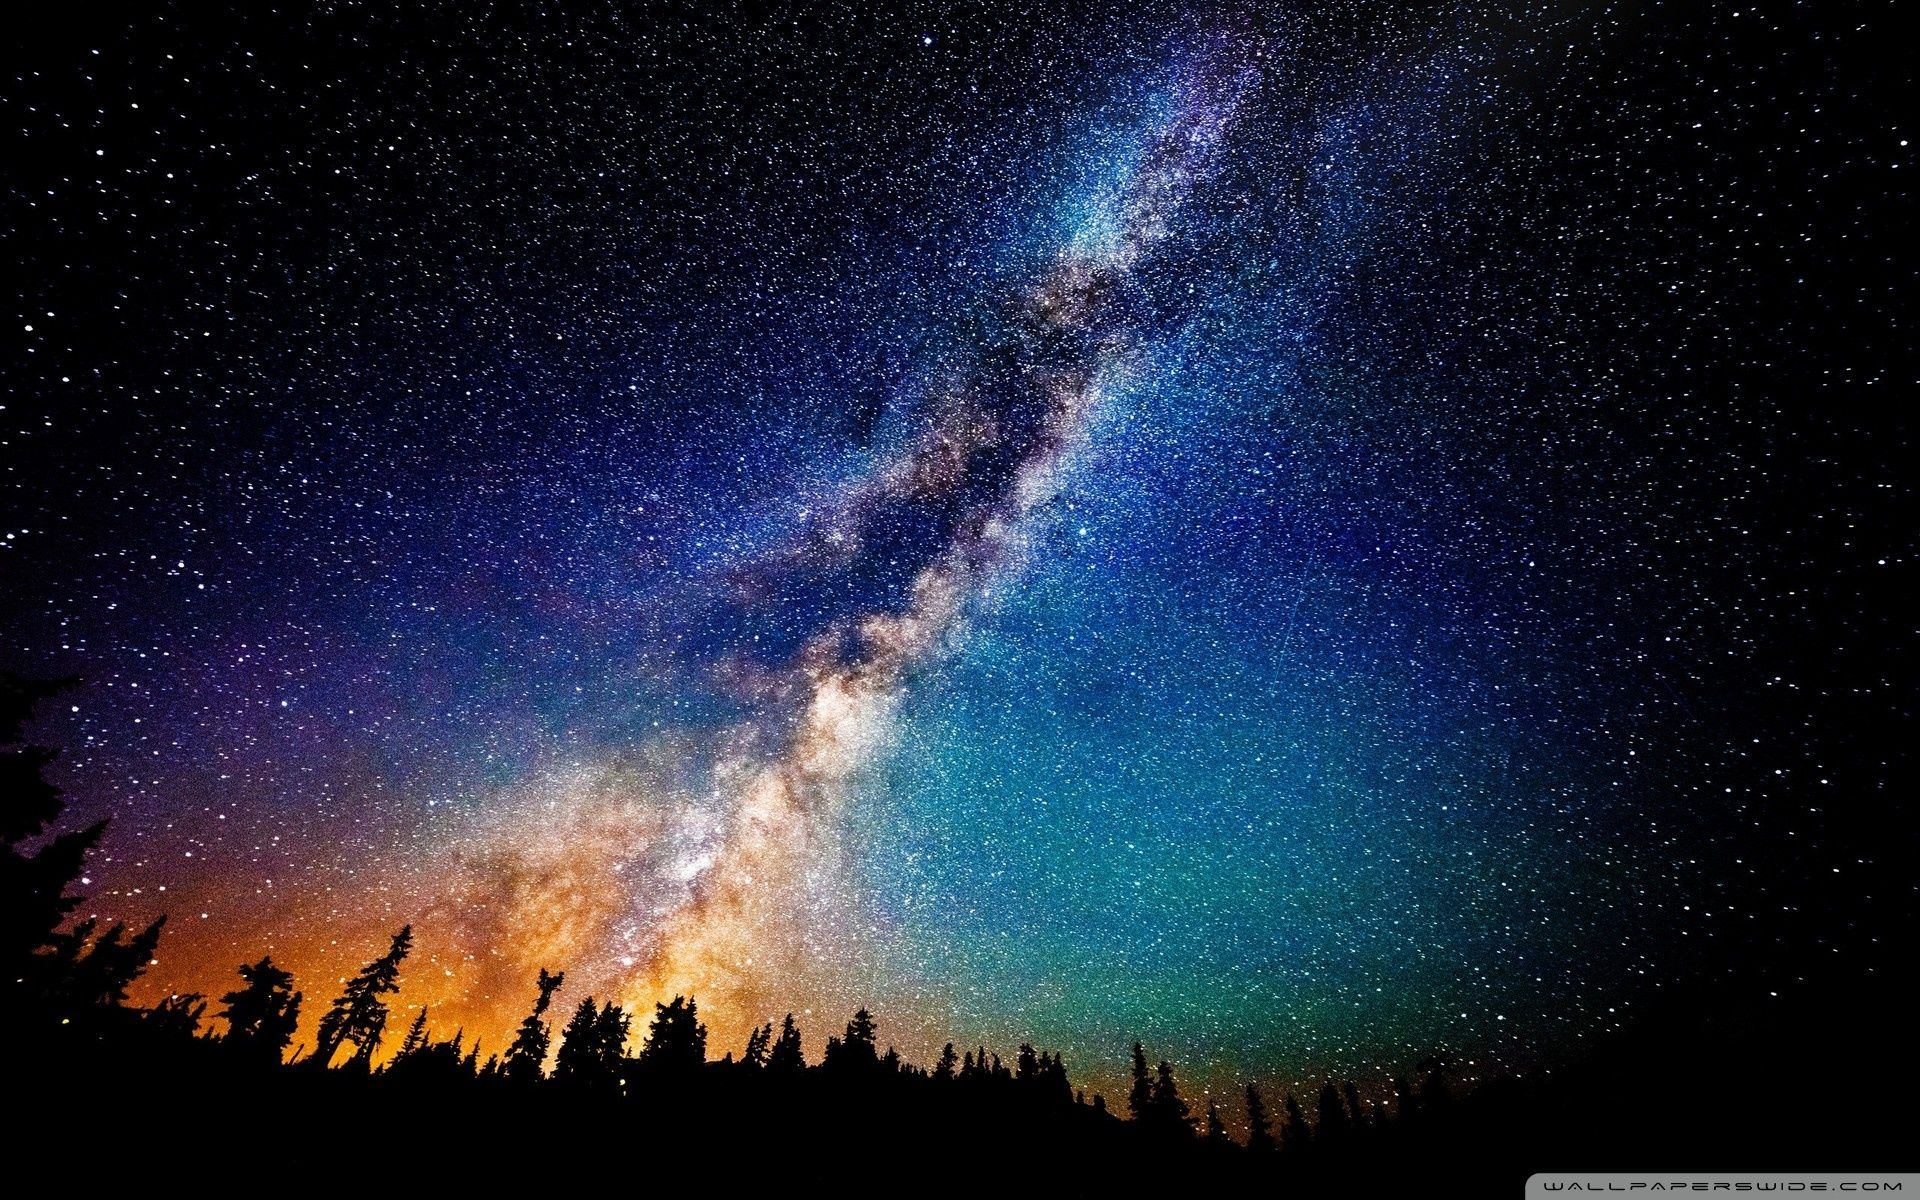 Milky Way 4k Wallpapers Top Free Milky Way 4k Backgrounds